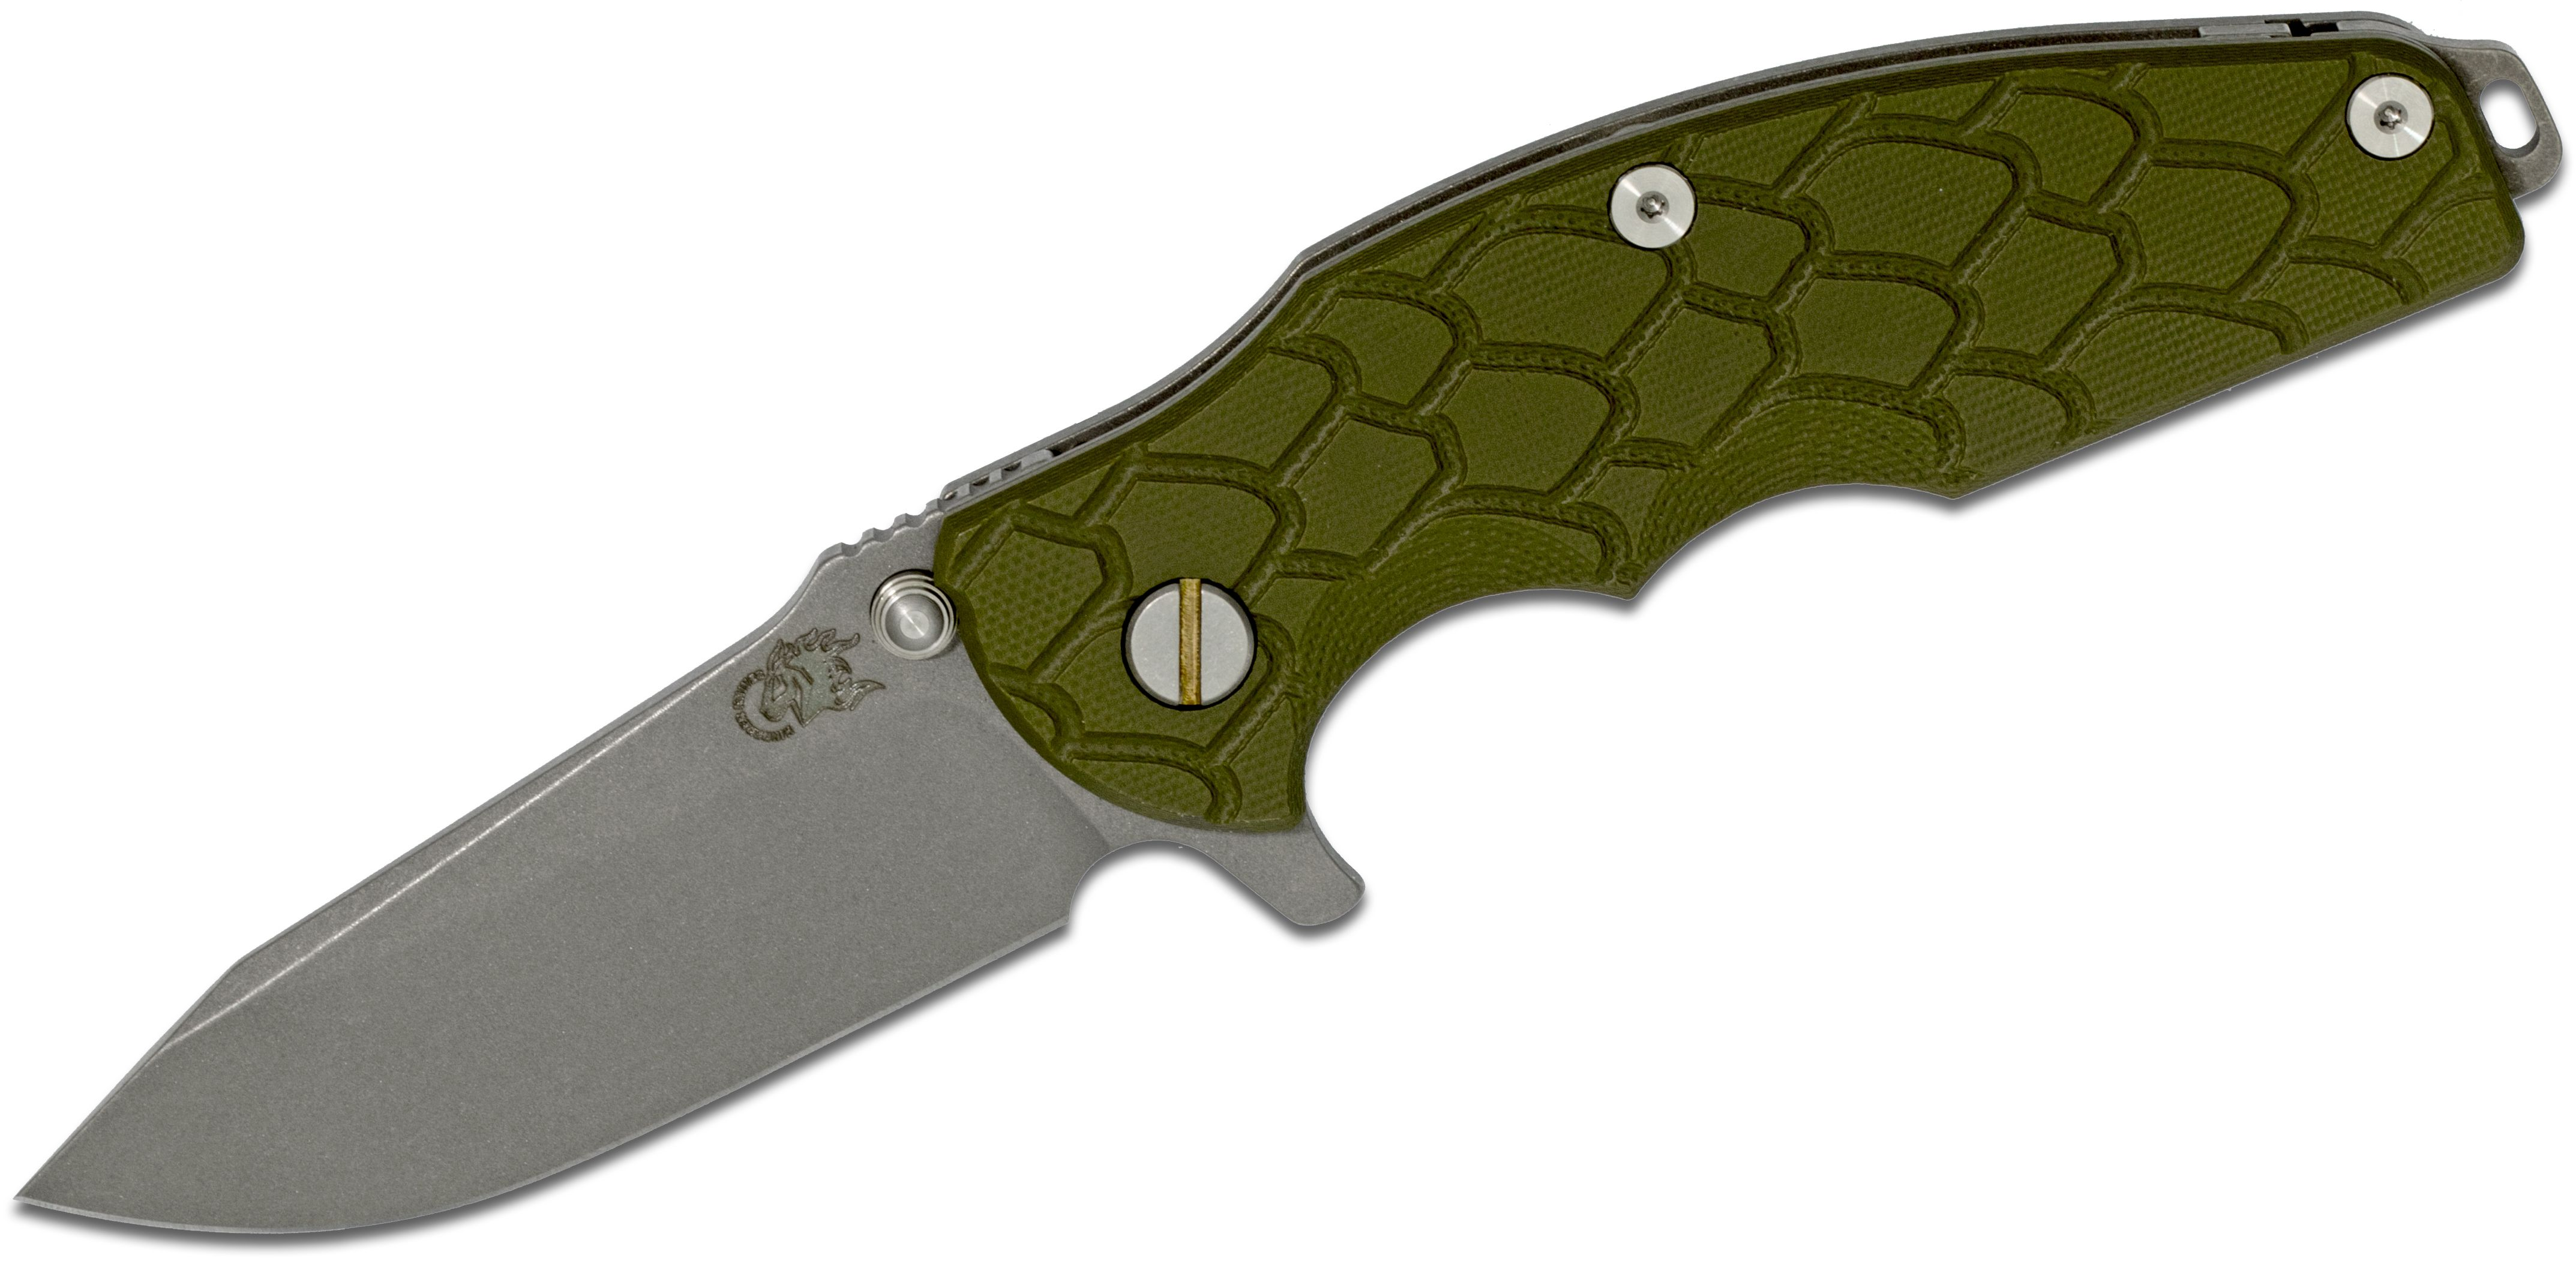 Rick Hinderer Knives Jurassic Flipper 3.25 inch S35VN Working Finish Spear Point Blade, OD Green G10 Handle